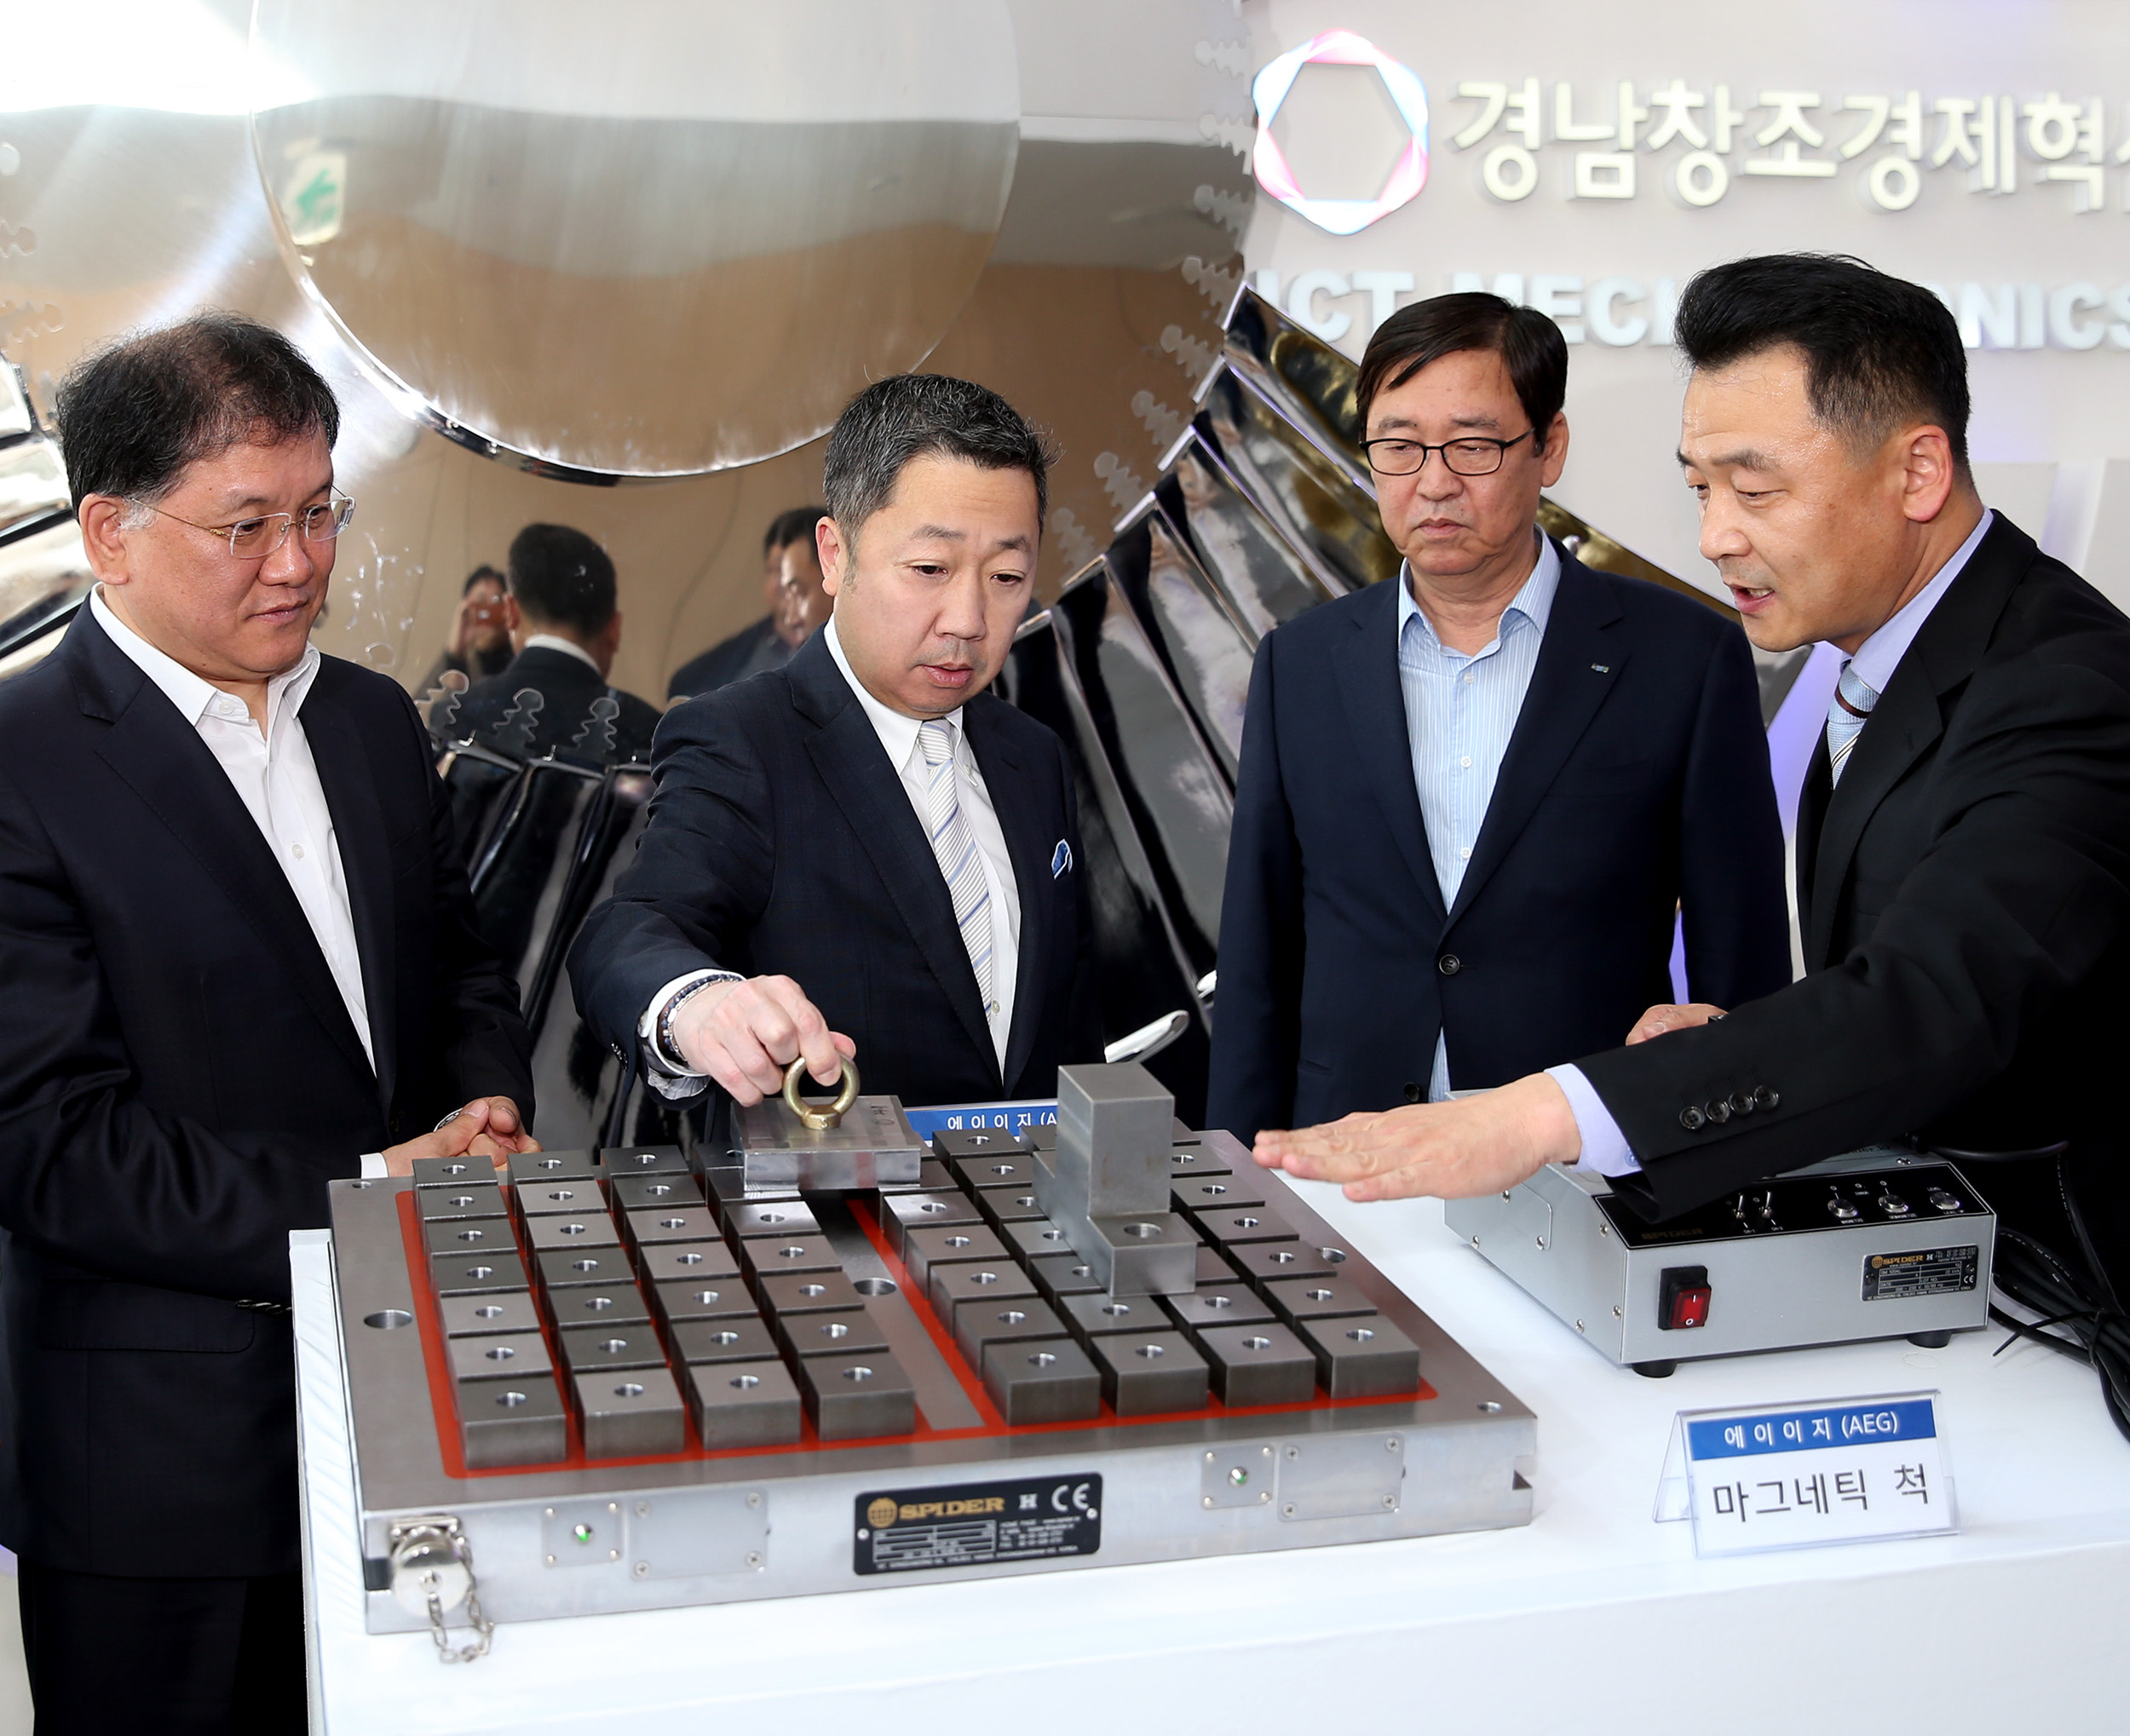 Doosan Group Chairman, Park Jeong won, (second from left) visited the Gyeongnam Center for Creative Economy and Innovation early April this year.